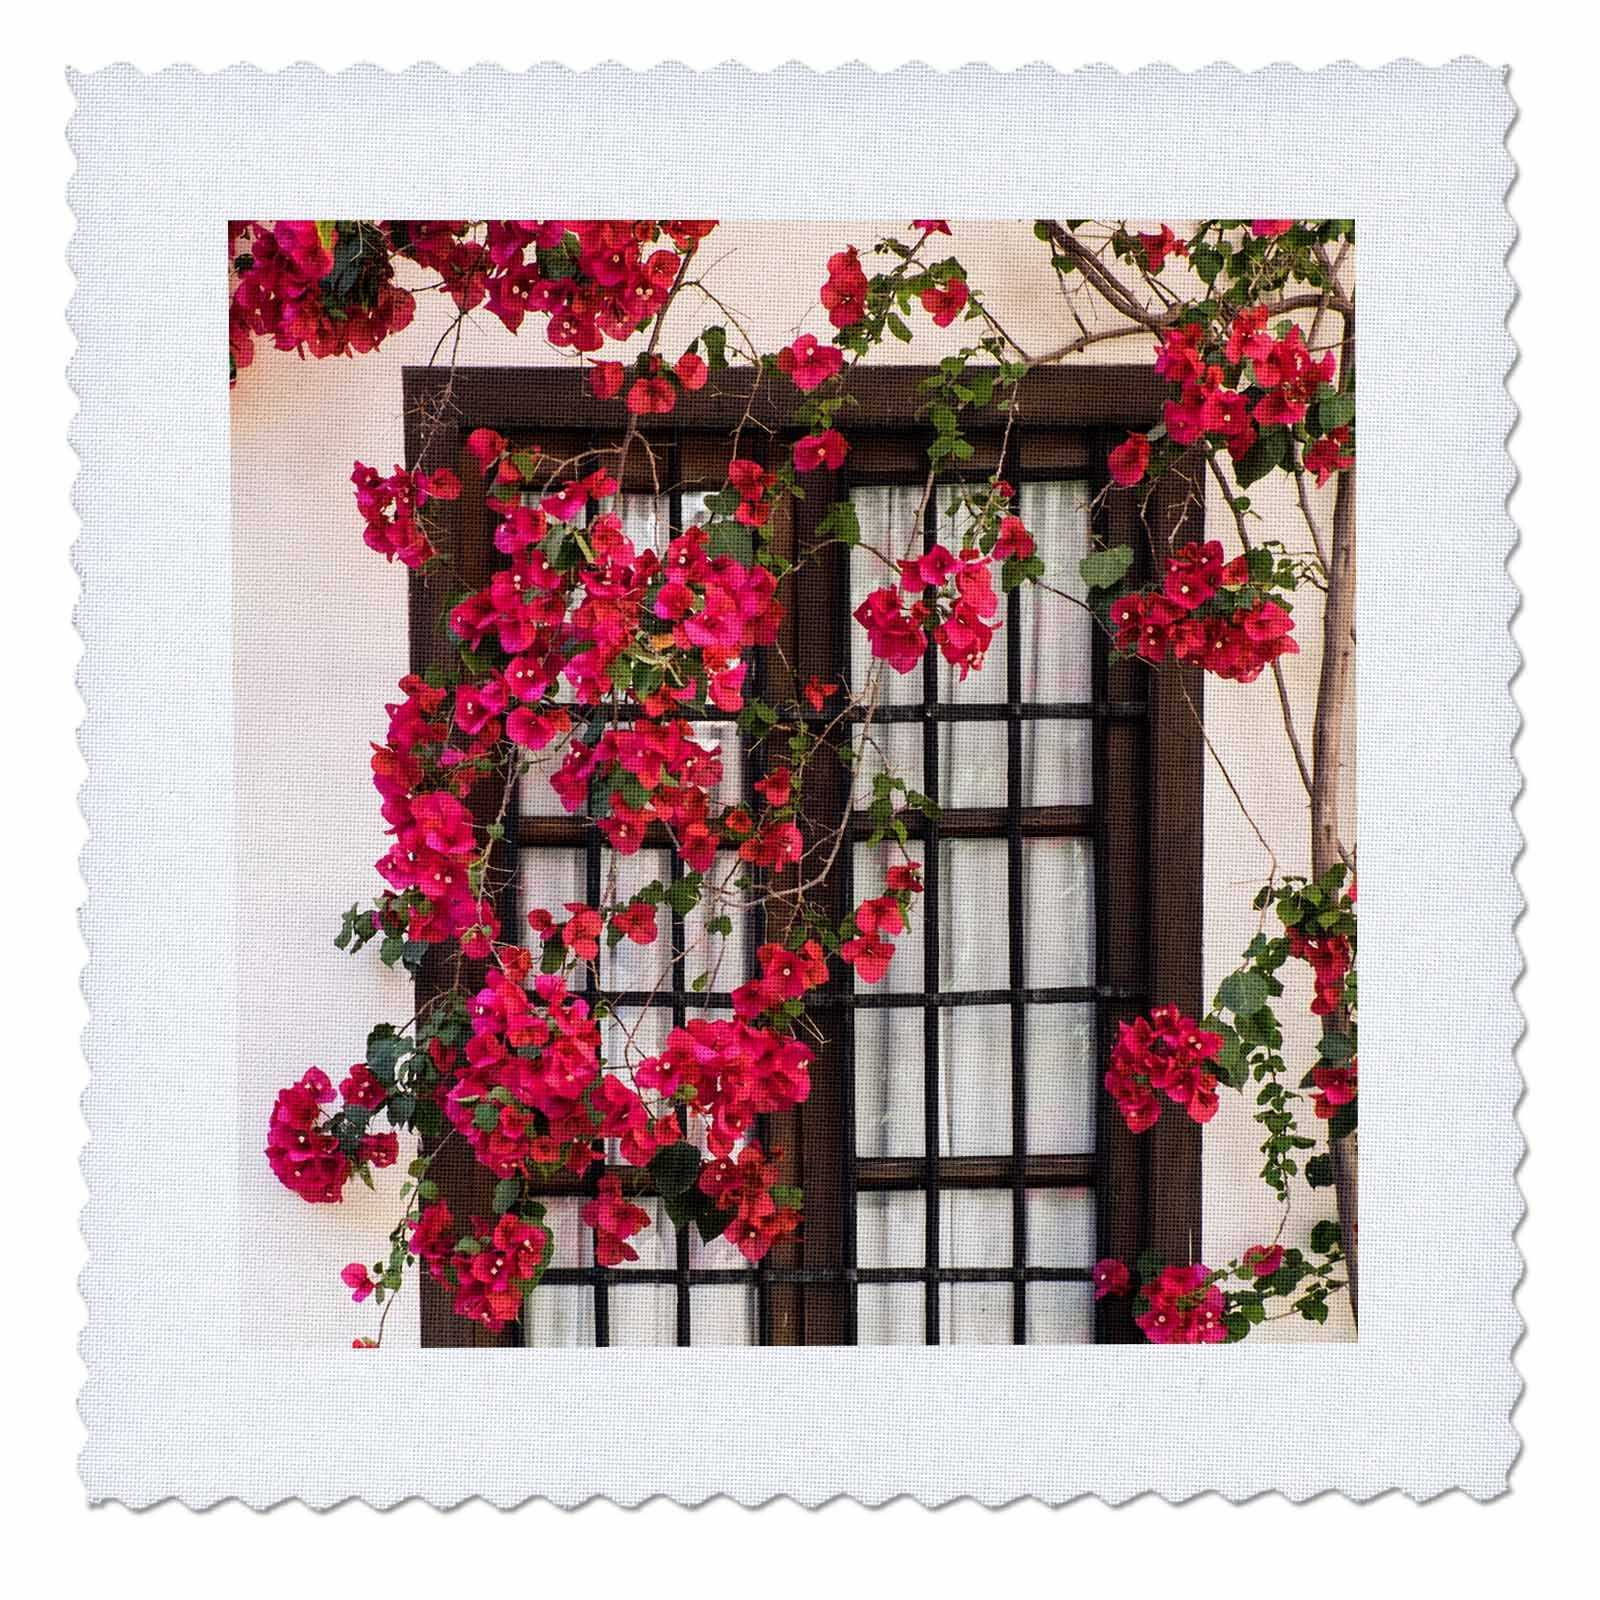 3dRose Danita Delimont - Flowers - Spain, Andalusia. Cordoba. Red bougainvillea and house window. - 12x12 inch quilt square (qs_277893_4)